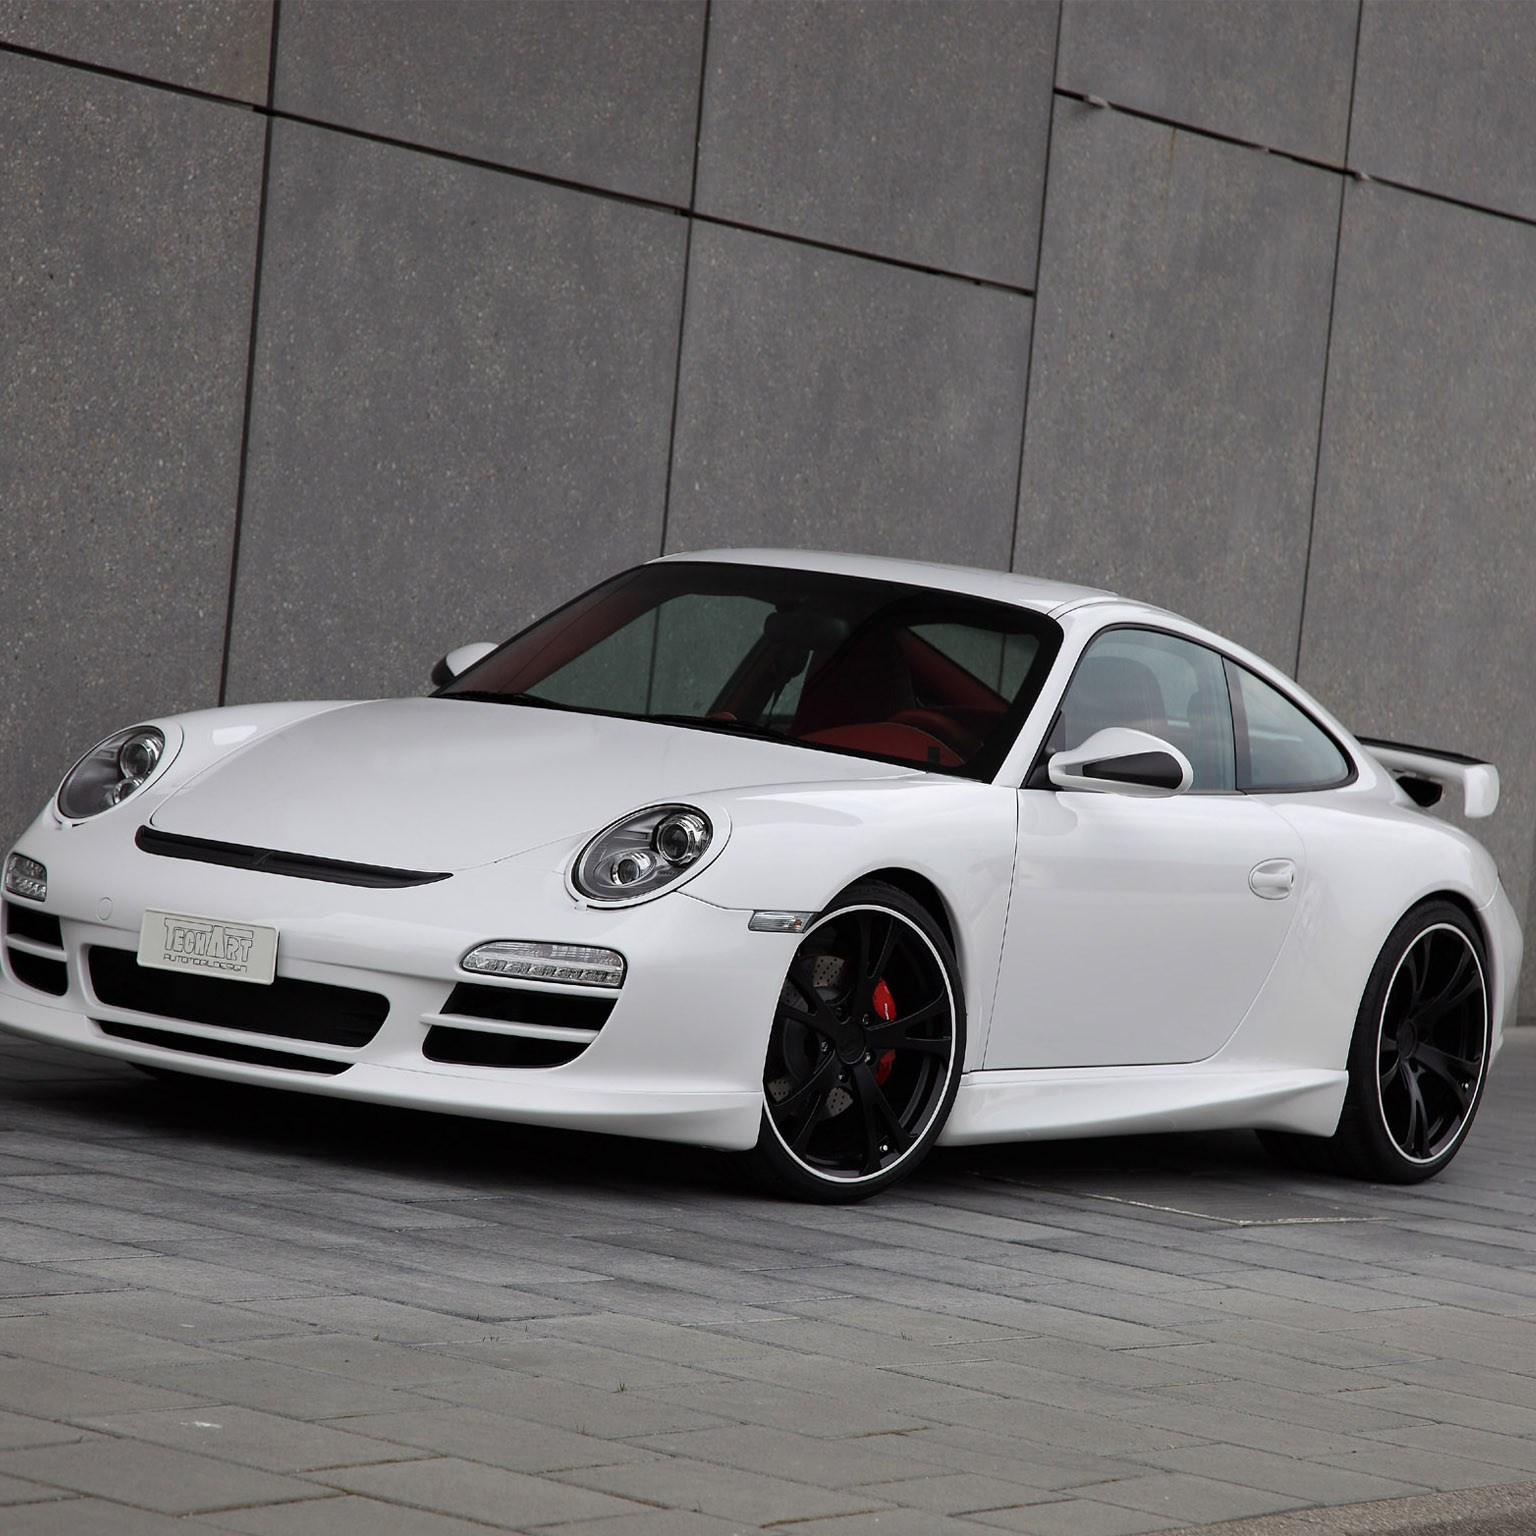 2009 Techart Porsche 911 Carrera 4s